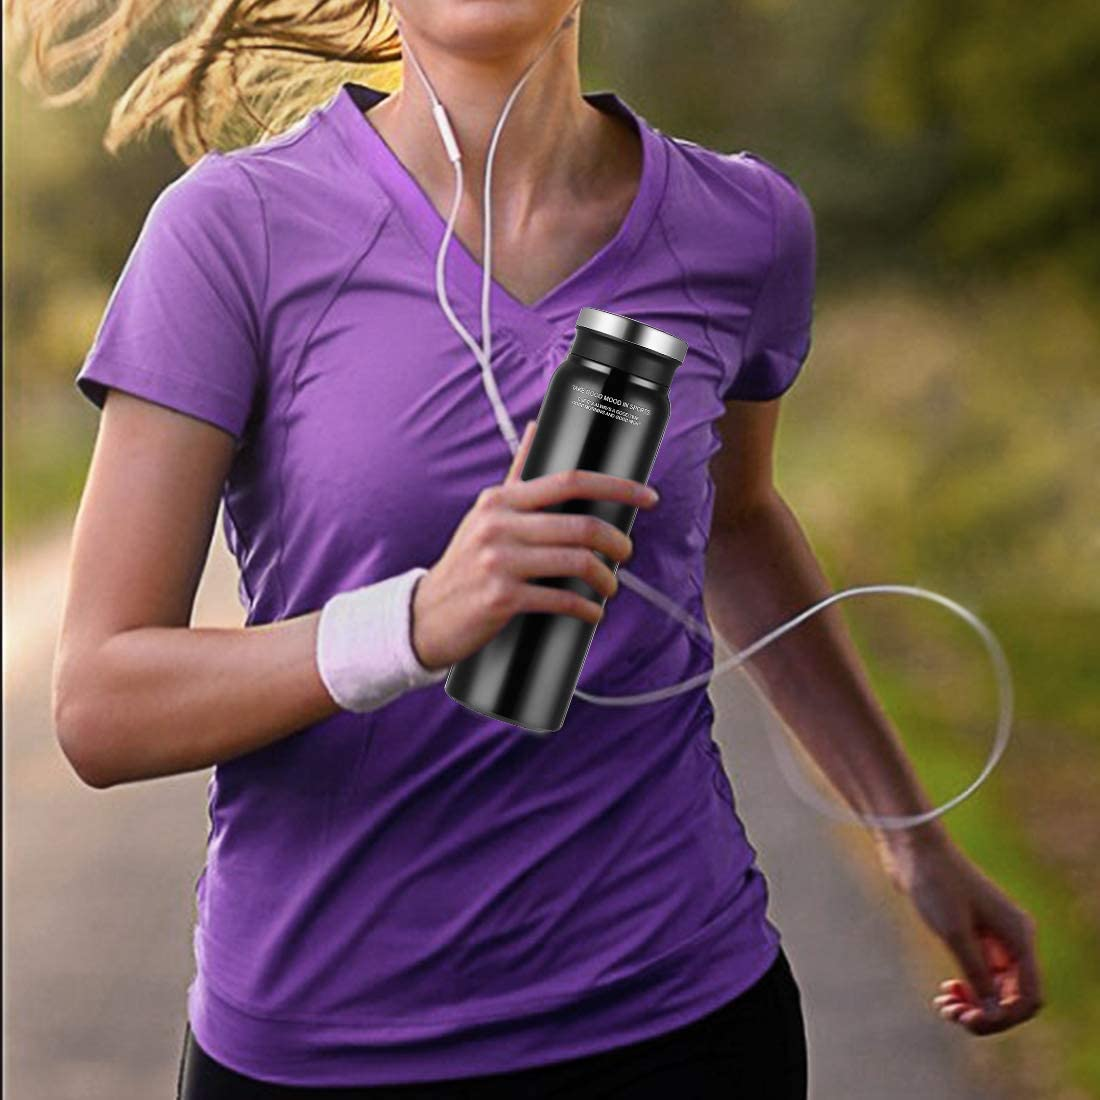 25oz Welovesea Stainless Steel Water Bottle Double Wall Vacuum Insulated Water Bottle Perfect for Outdoor Sports Wide Mouth